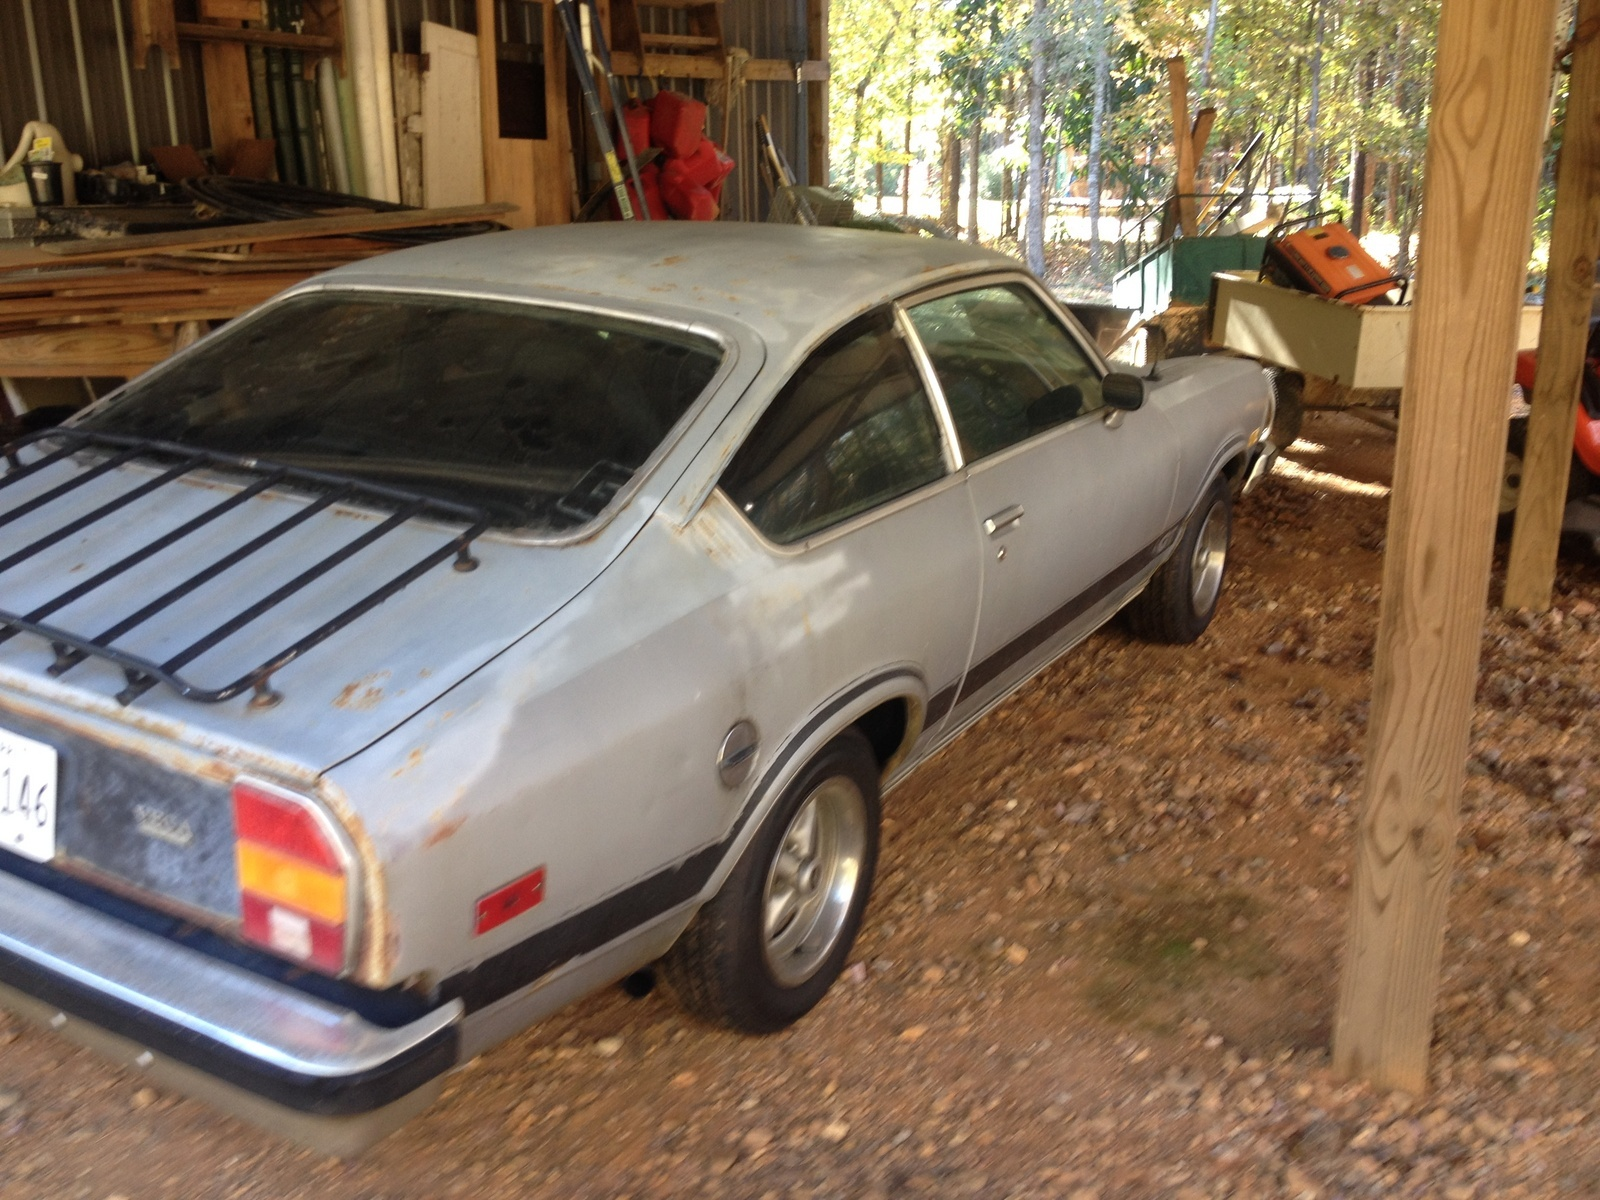 chevrolet vega questions 1976 vega gt cargurus i am needing to sell the car but i don t know what its worth the car is a very solid car and i want it to go to a vega lover please help